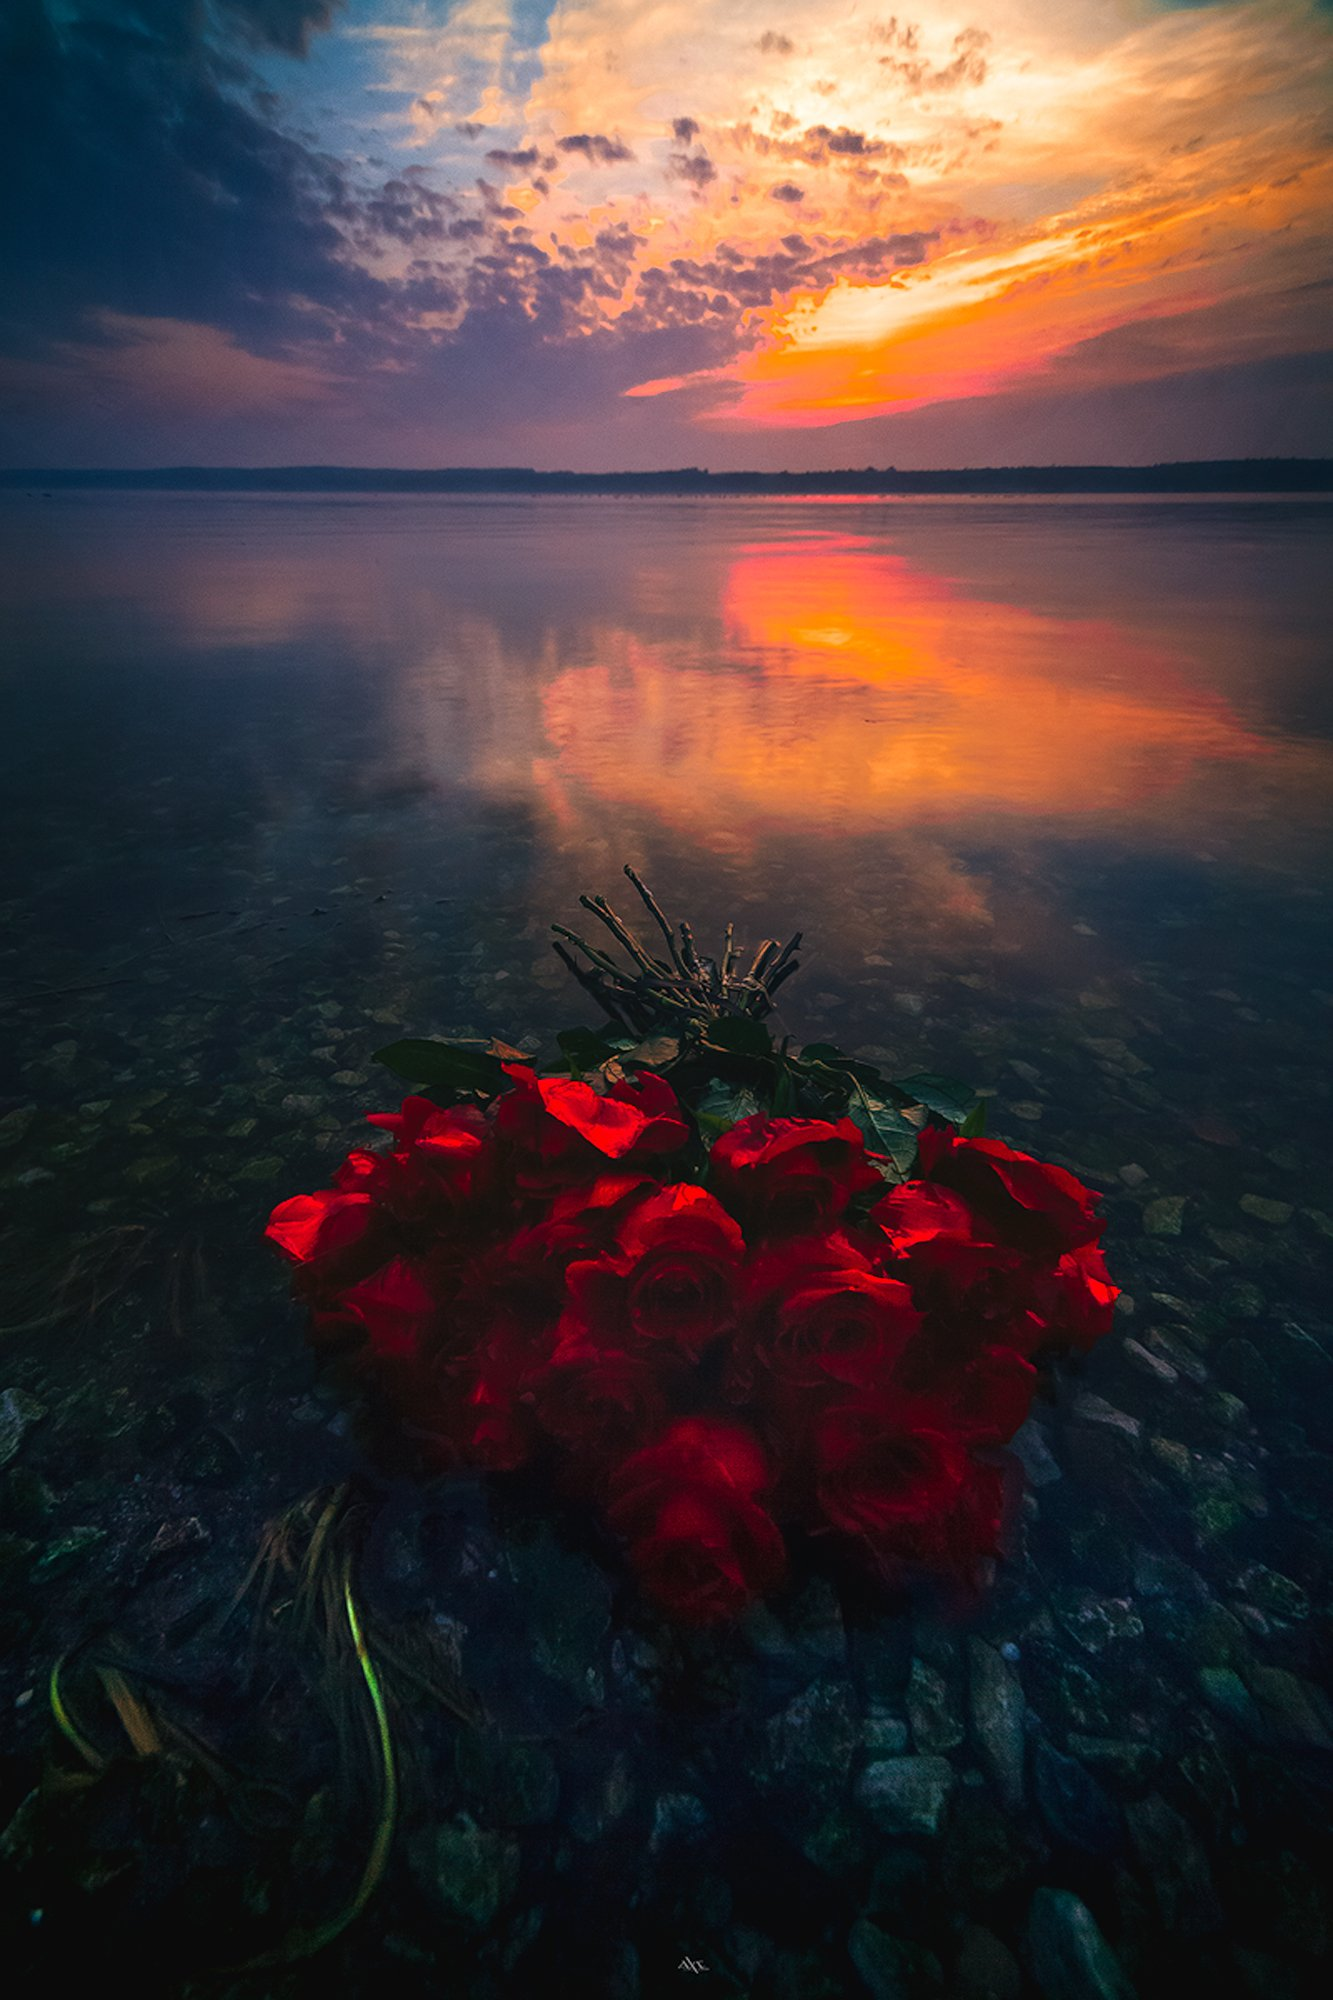 landscape, sunset, curonian lagoon, lithuania, colors, reflection, roses, Руслан Болгов (Axe)